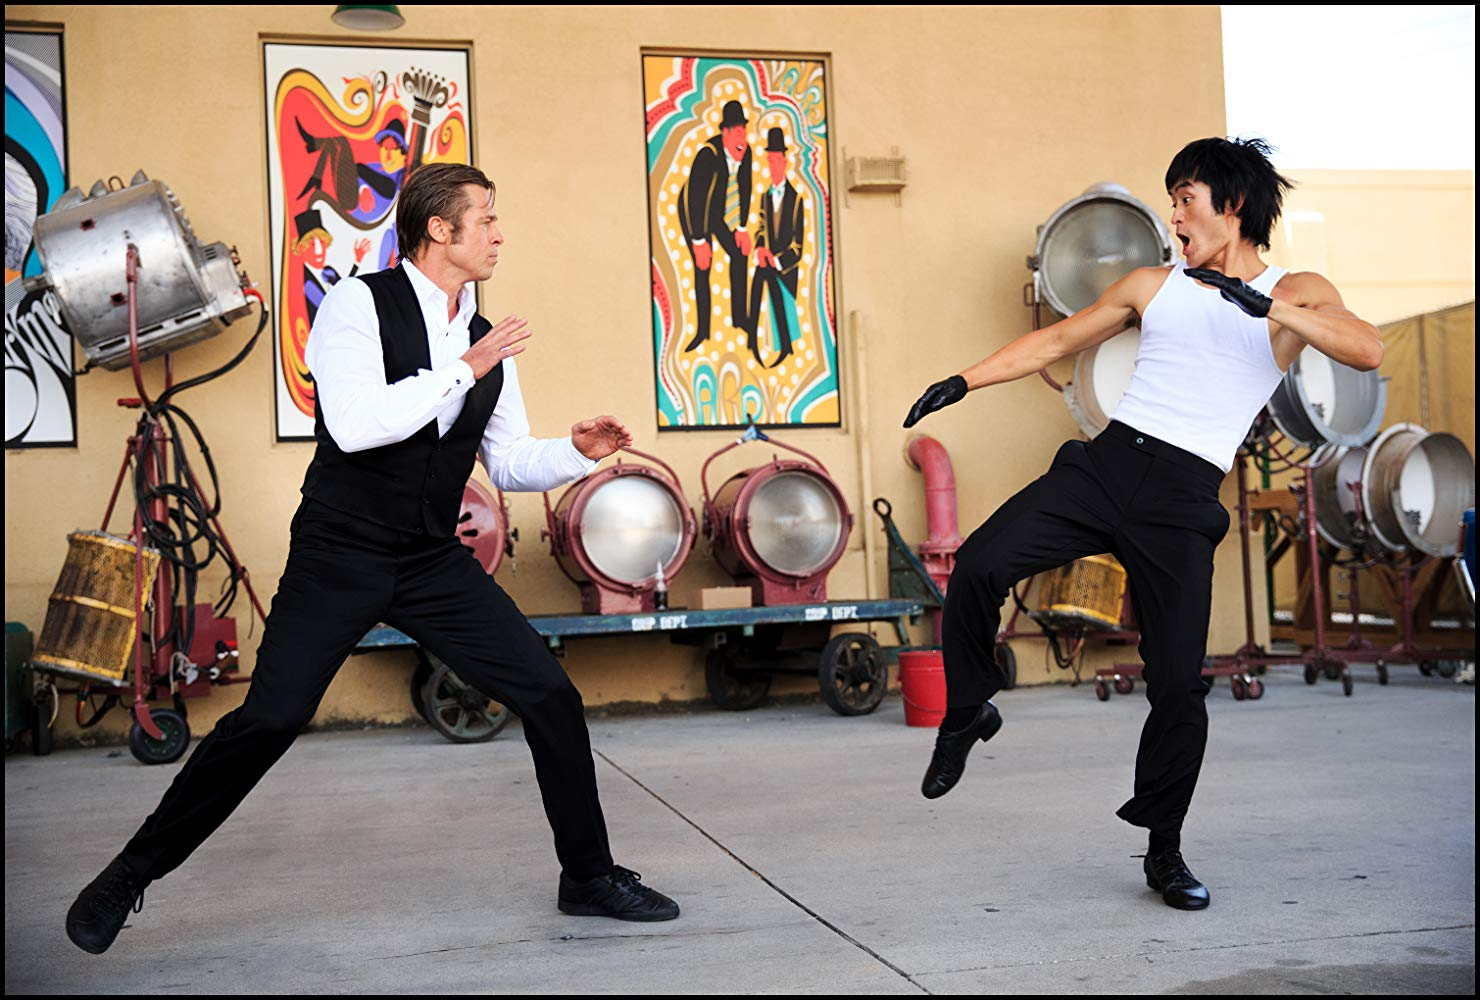 Cliff Booth (Brad Pitt) faces Bruce Lee (Mike Moh) in Once Upon a Time in Hollywood